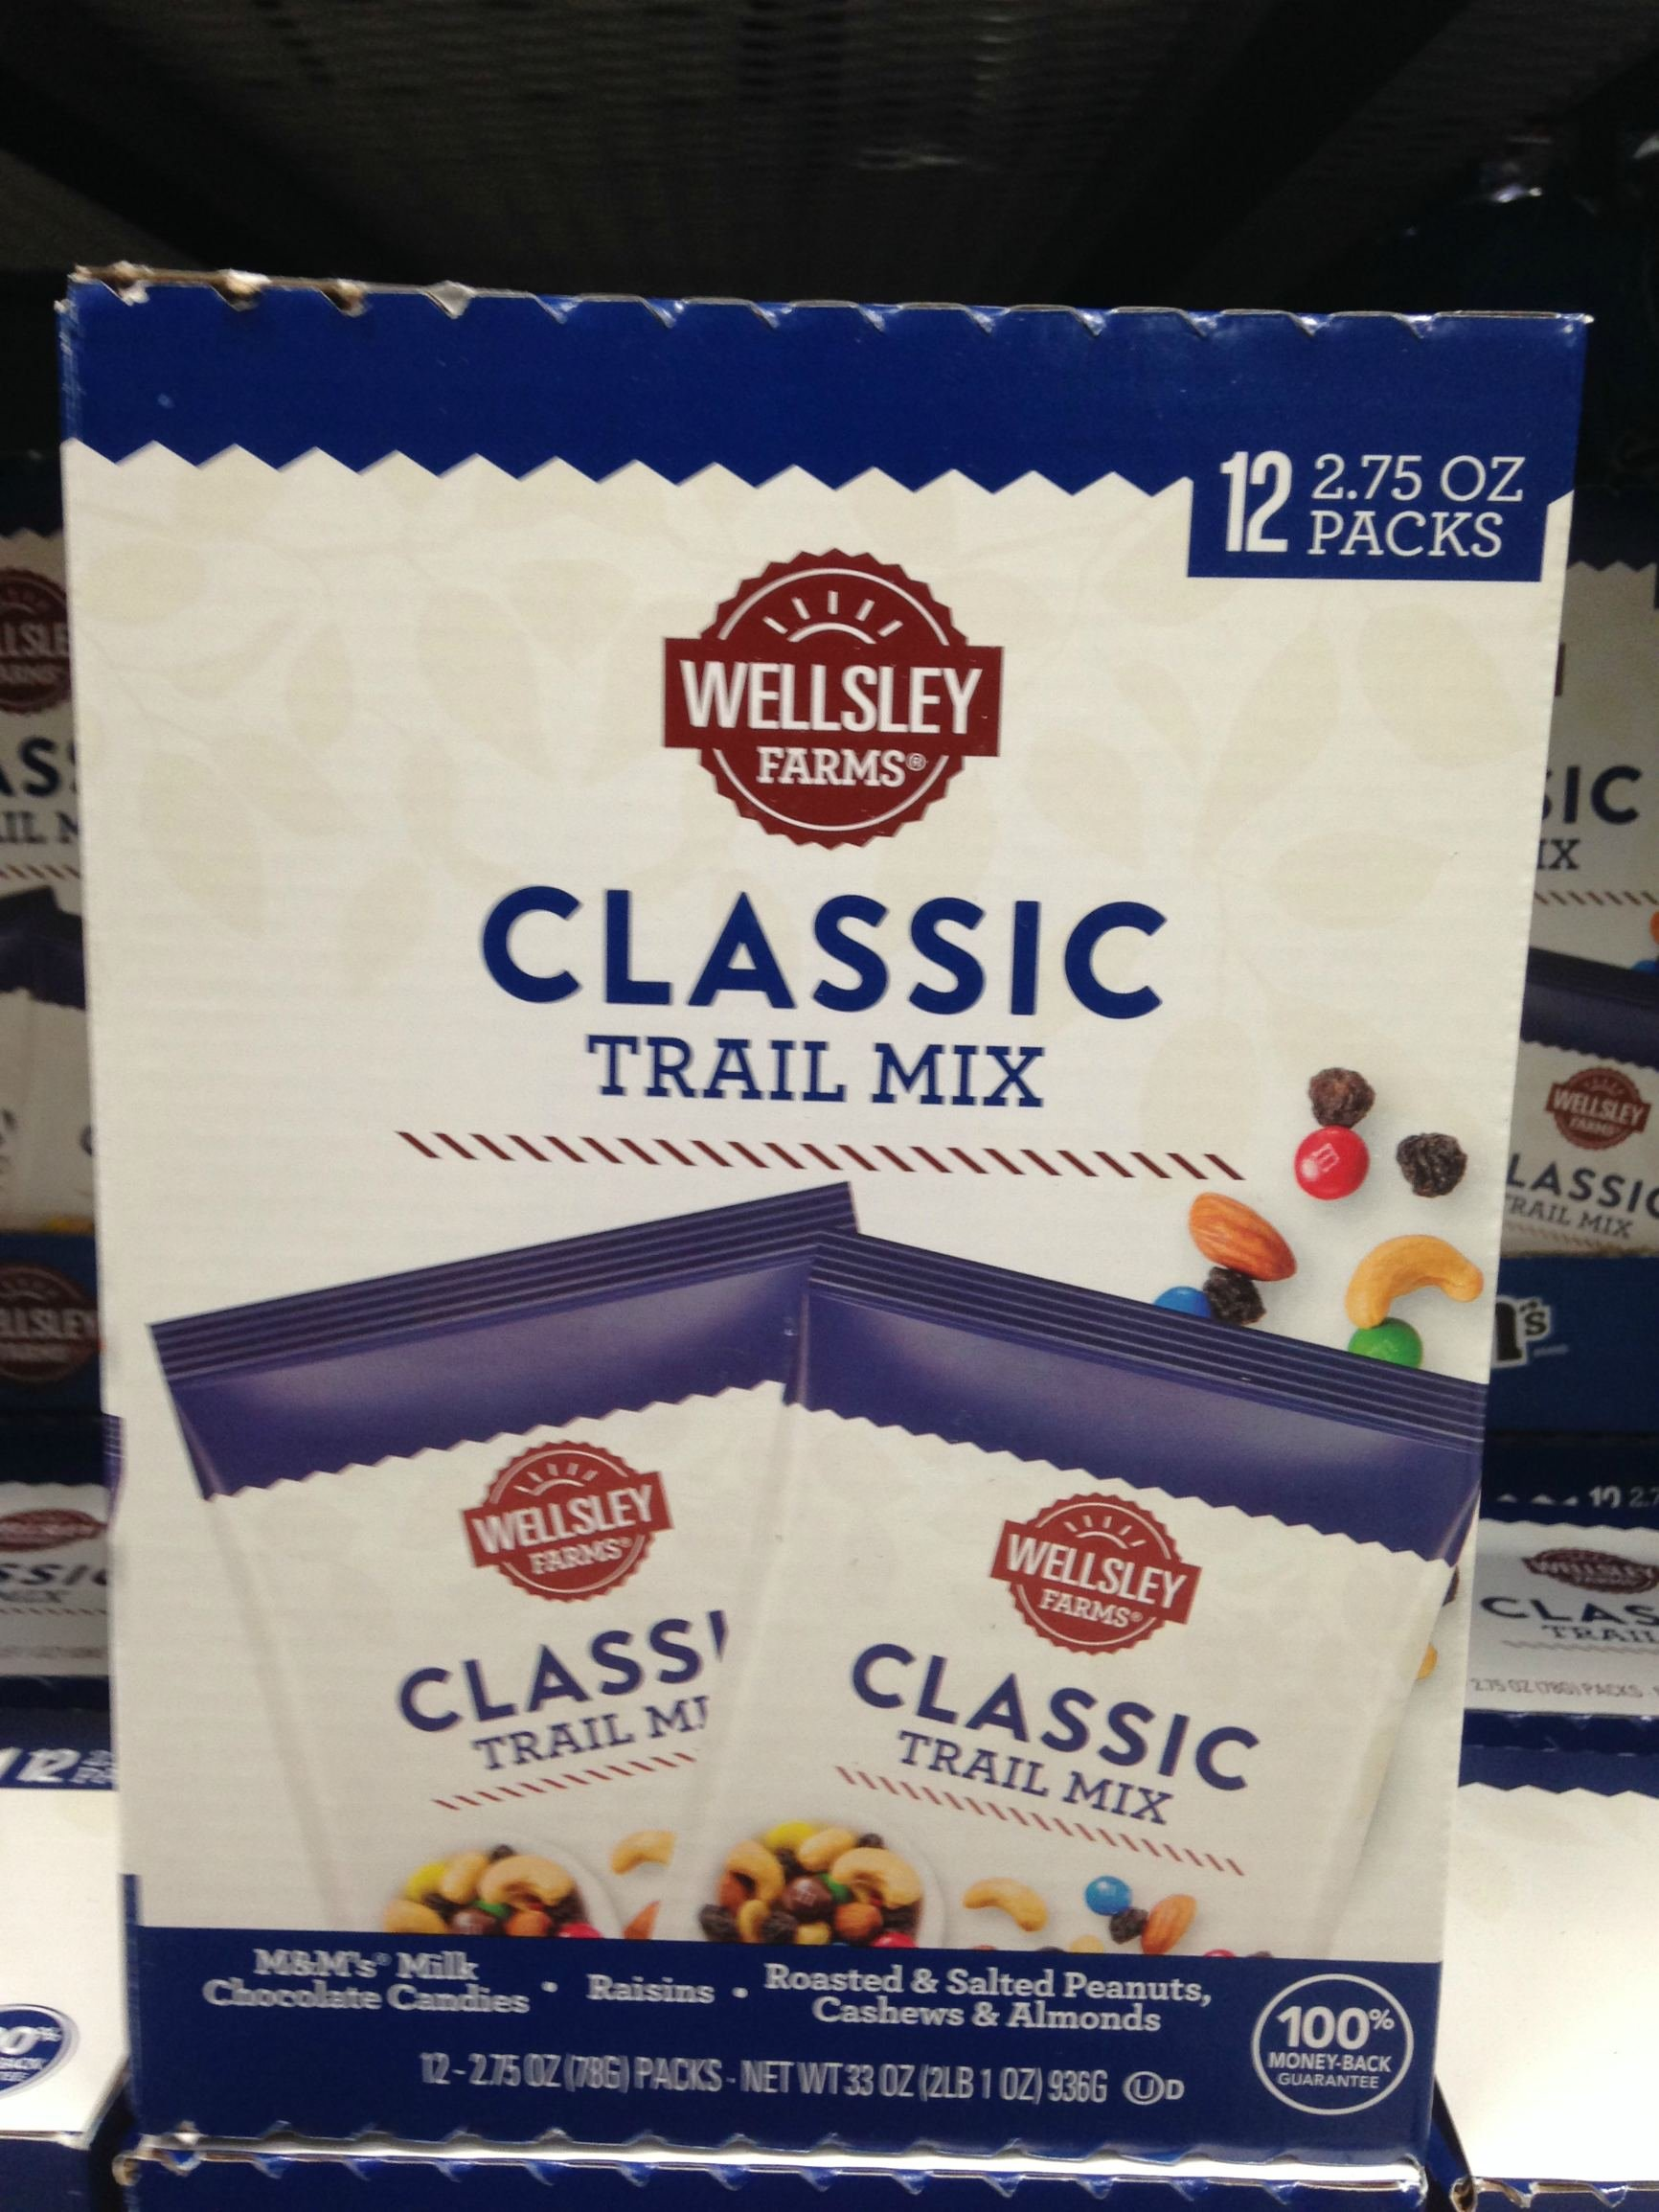 Wellsley farms classic trail mix 33 oz (pack of 6)